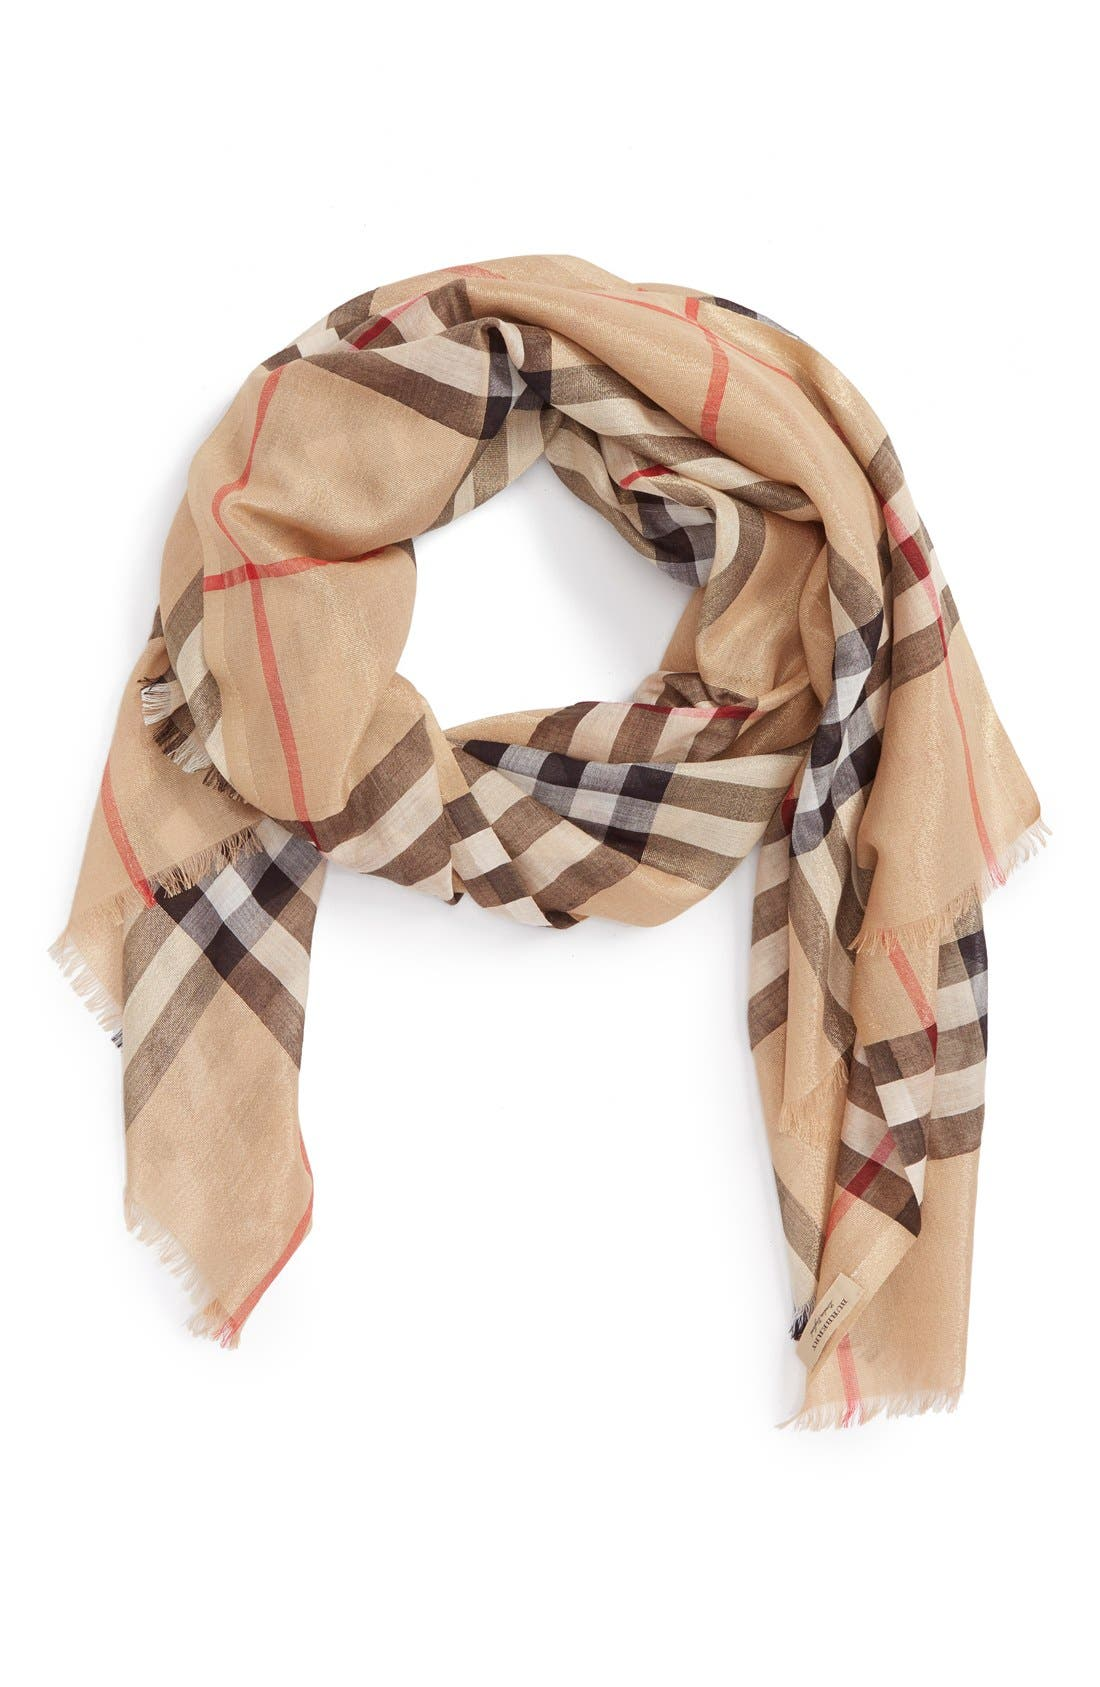 BURBERRY,                             Giant Check Scarf,                             Main thumbnail 1, color,                             250